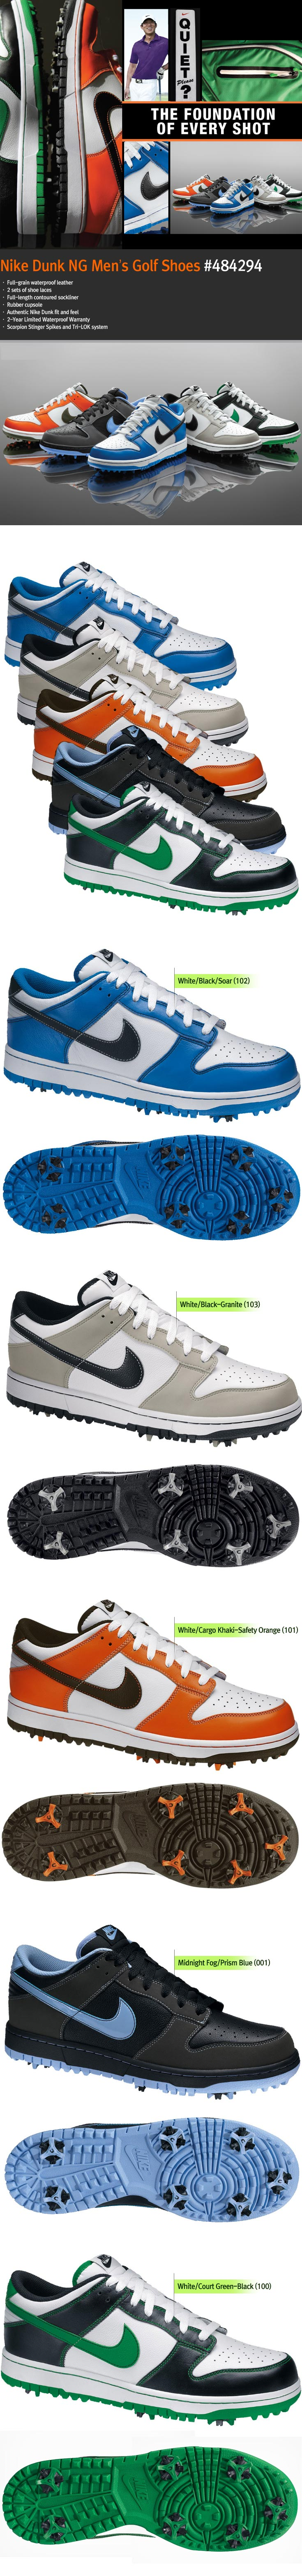 the best attitude 63f8a b0d84 NIKE Dunk NG Men s Golf Shoes - Shoes